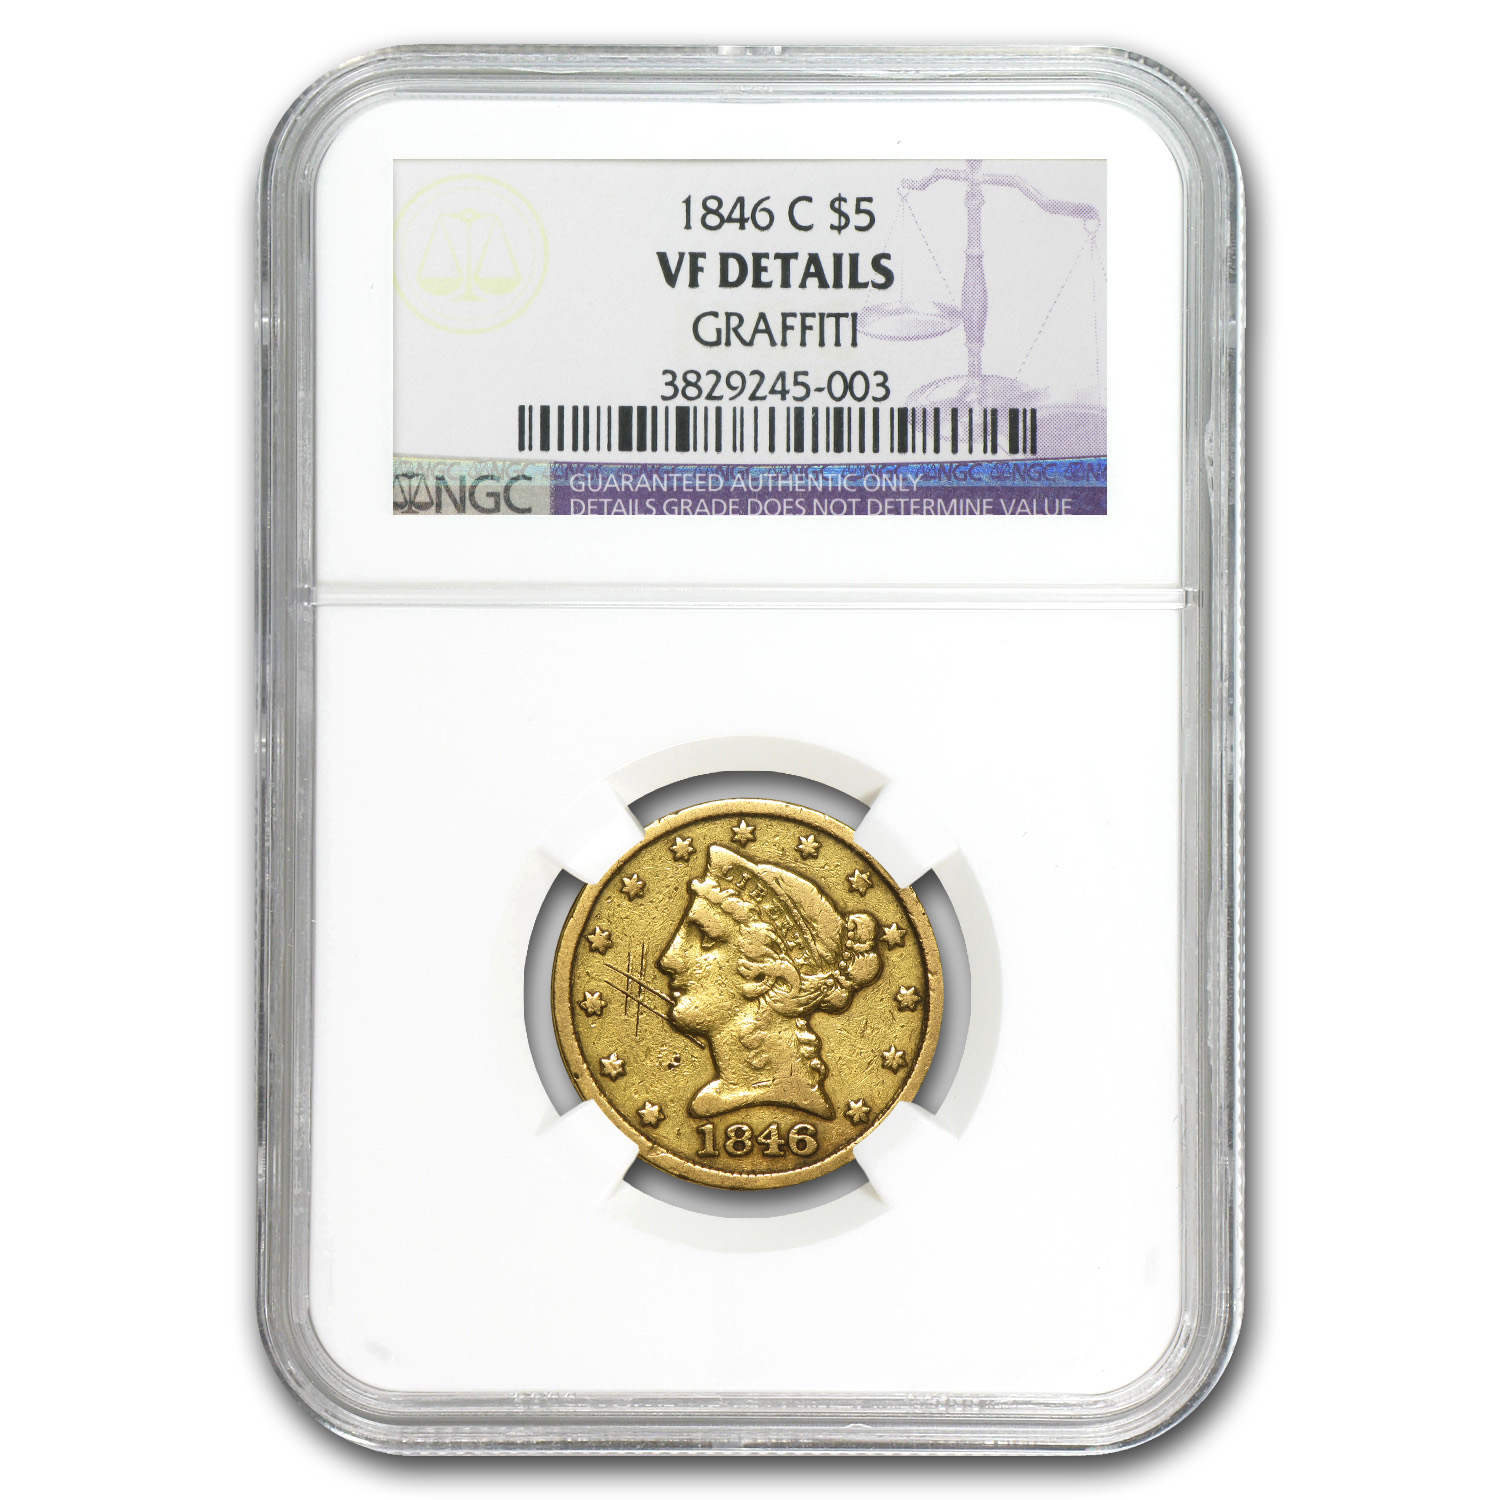 1846-C $5 Liberty Gold Half Eagle - VF Details NGC - (Graffiti)